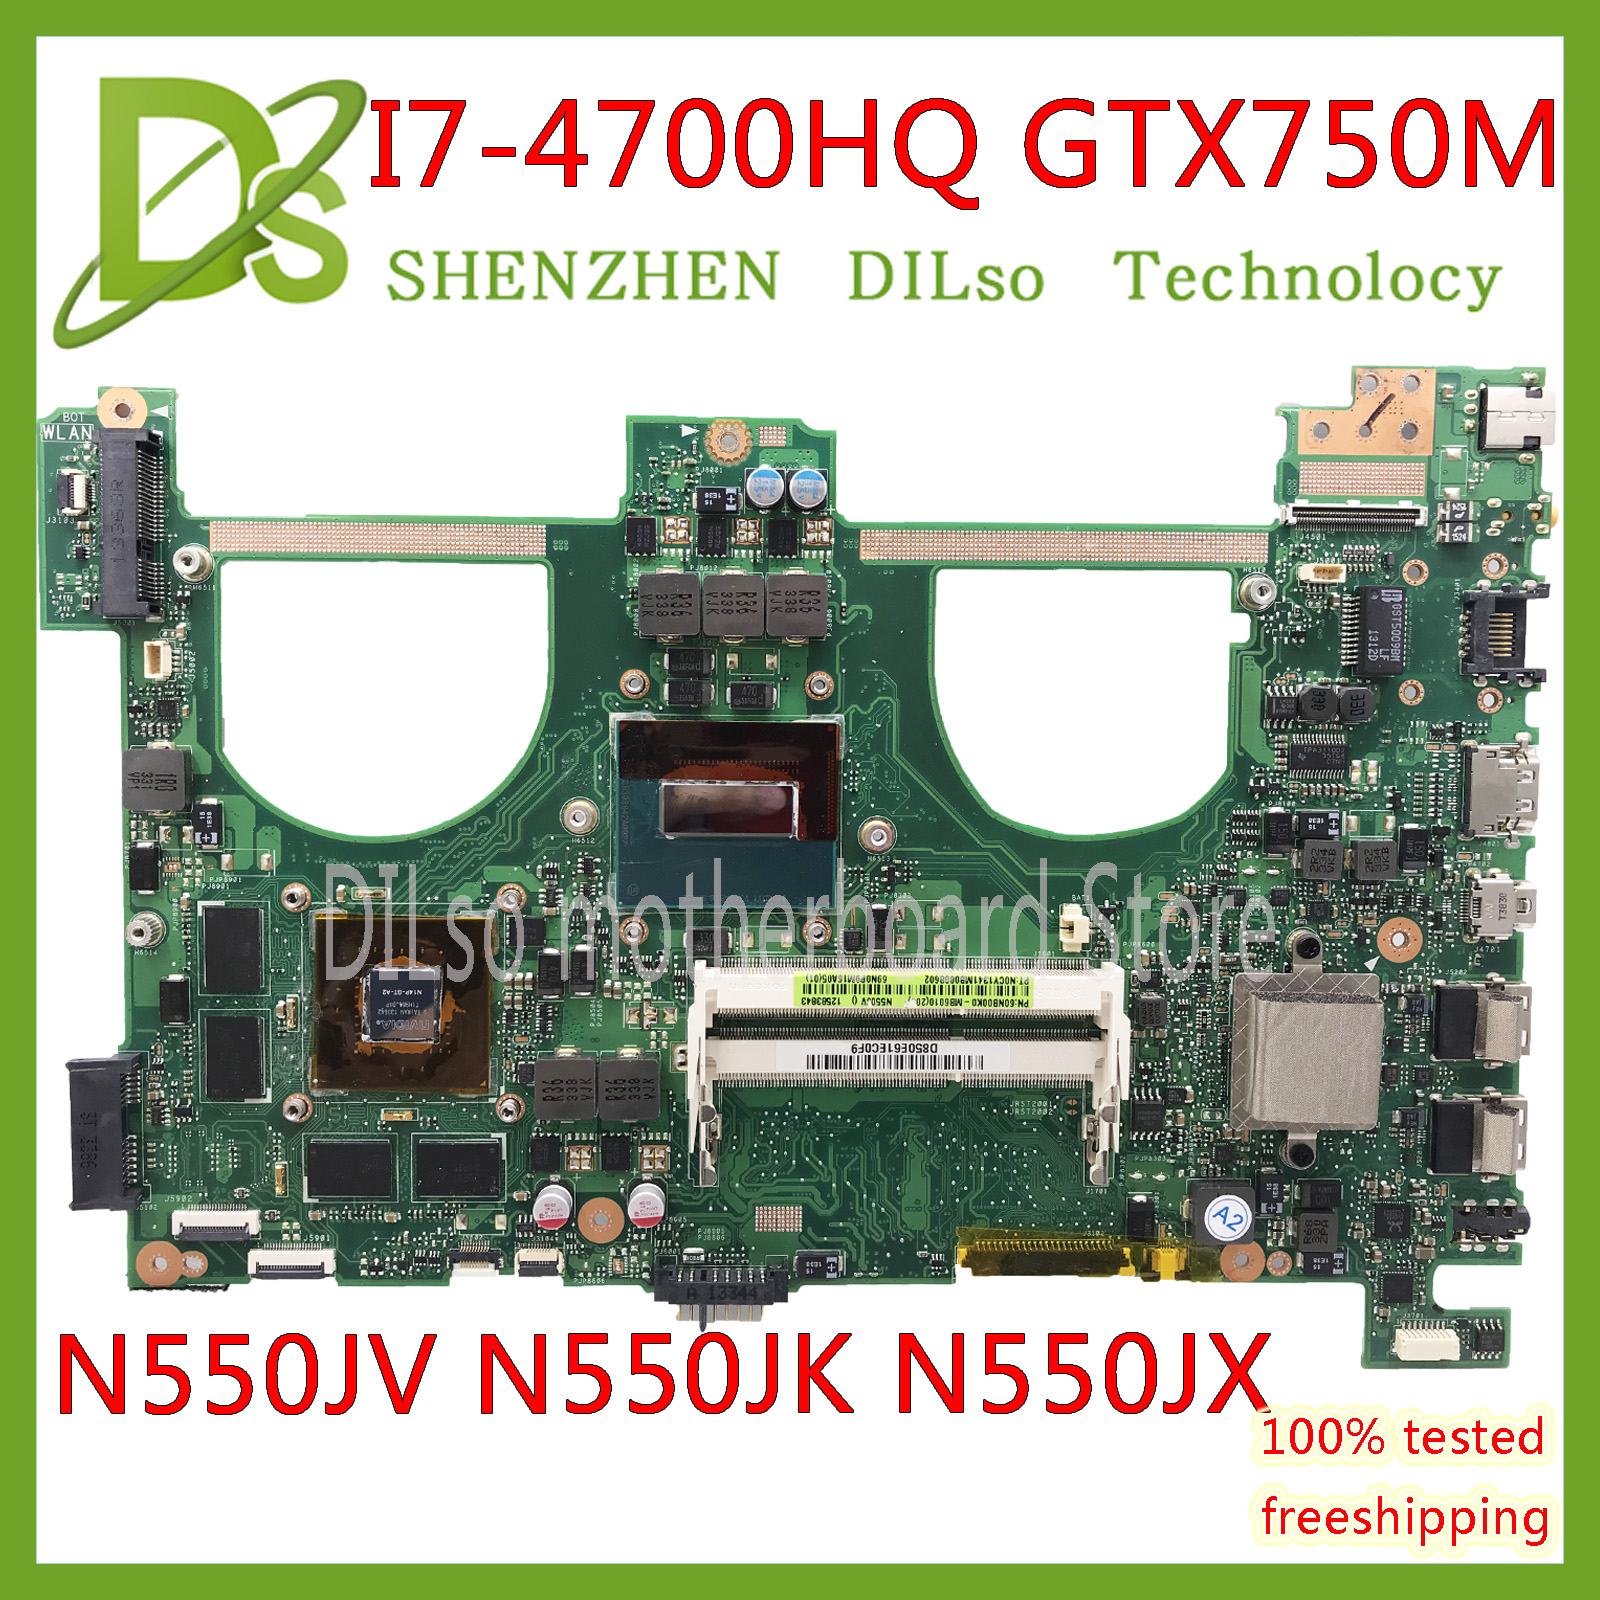 KEFU N550JV For ASUS N550jv N550JK N550J N550JX Laptop Motherboard  I7-4700HQ GTX750 4GB/2GB GPU Mainboard Test New Motherboard